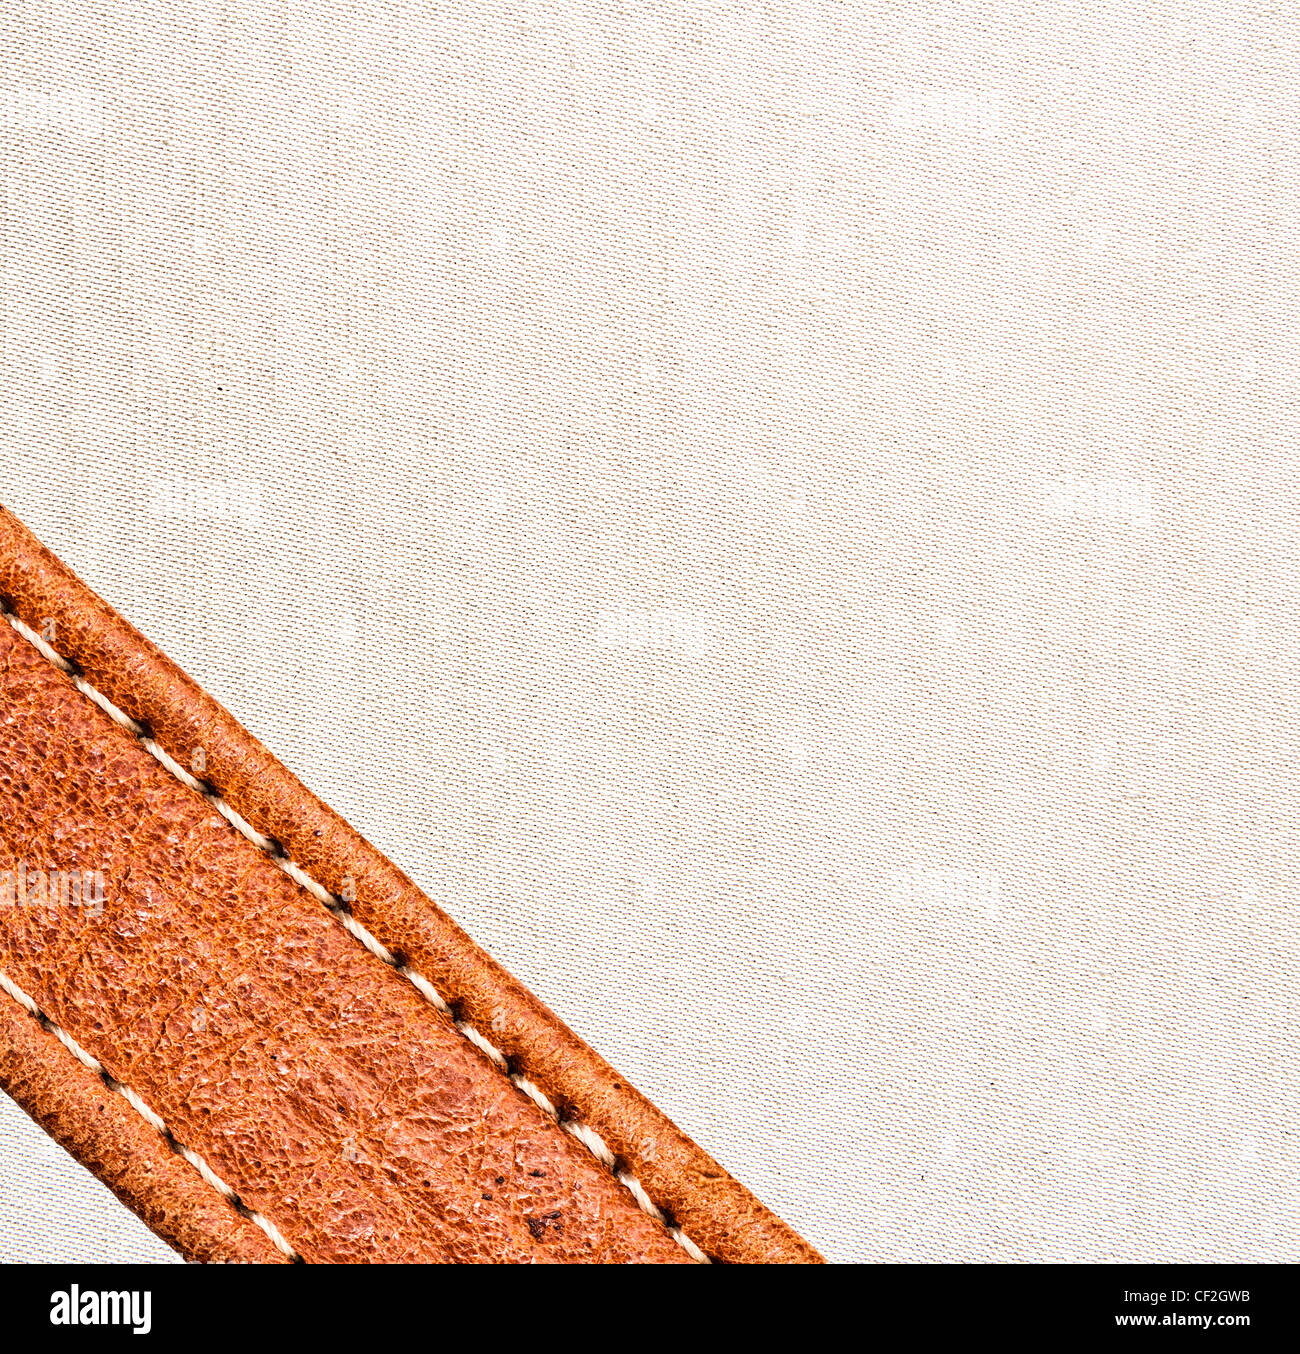 Image de fond en cuir et textile. Photo Stock